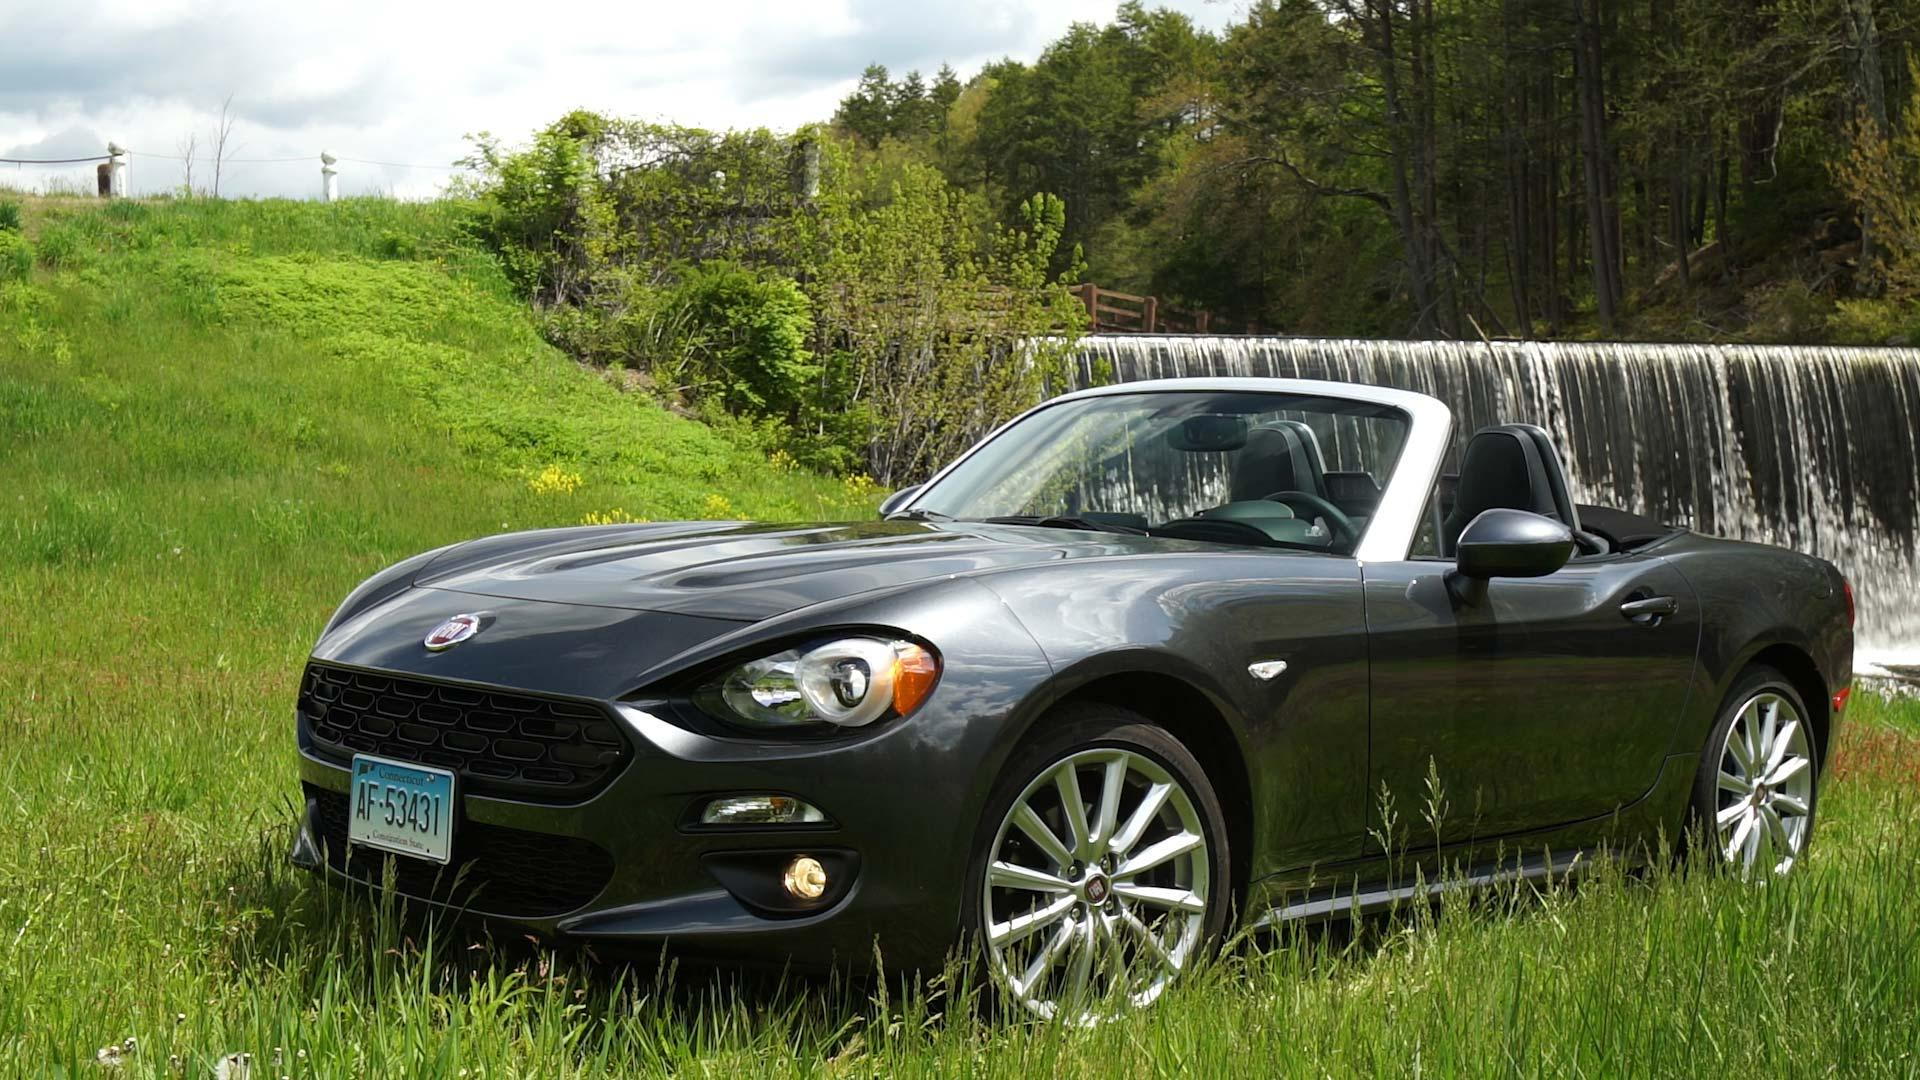 First Drive: 2017 Fiat 124 Spider - Consumer Reports